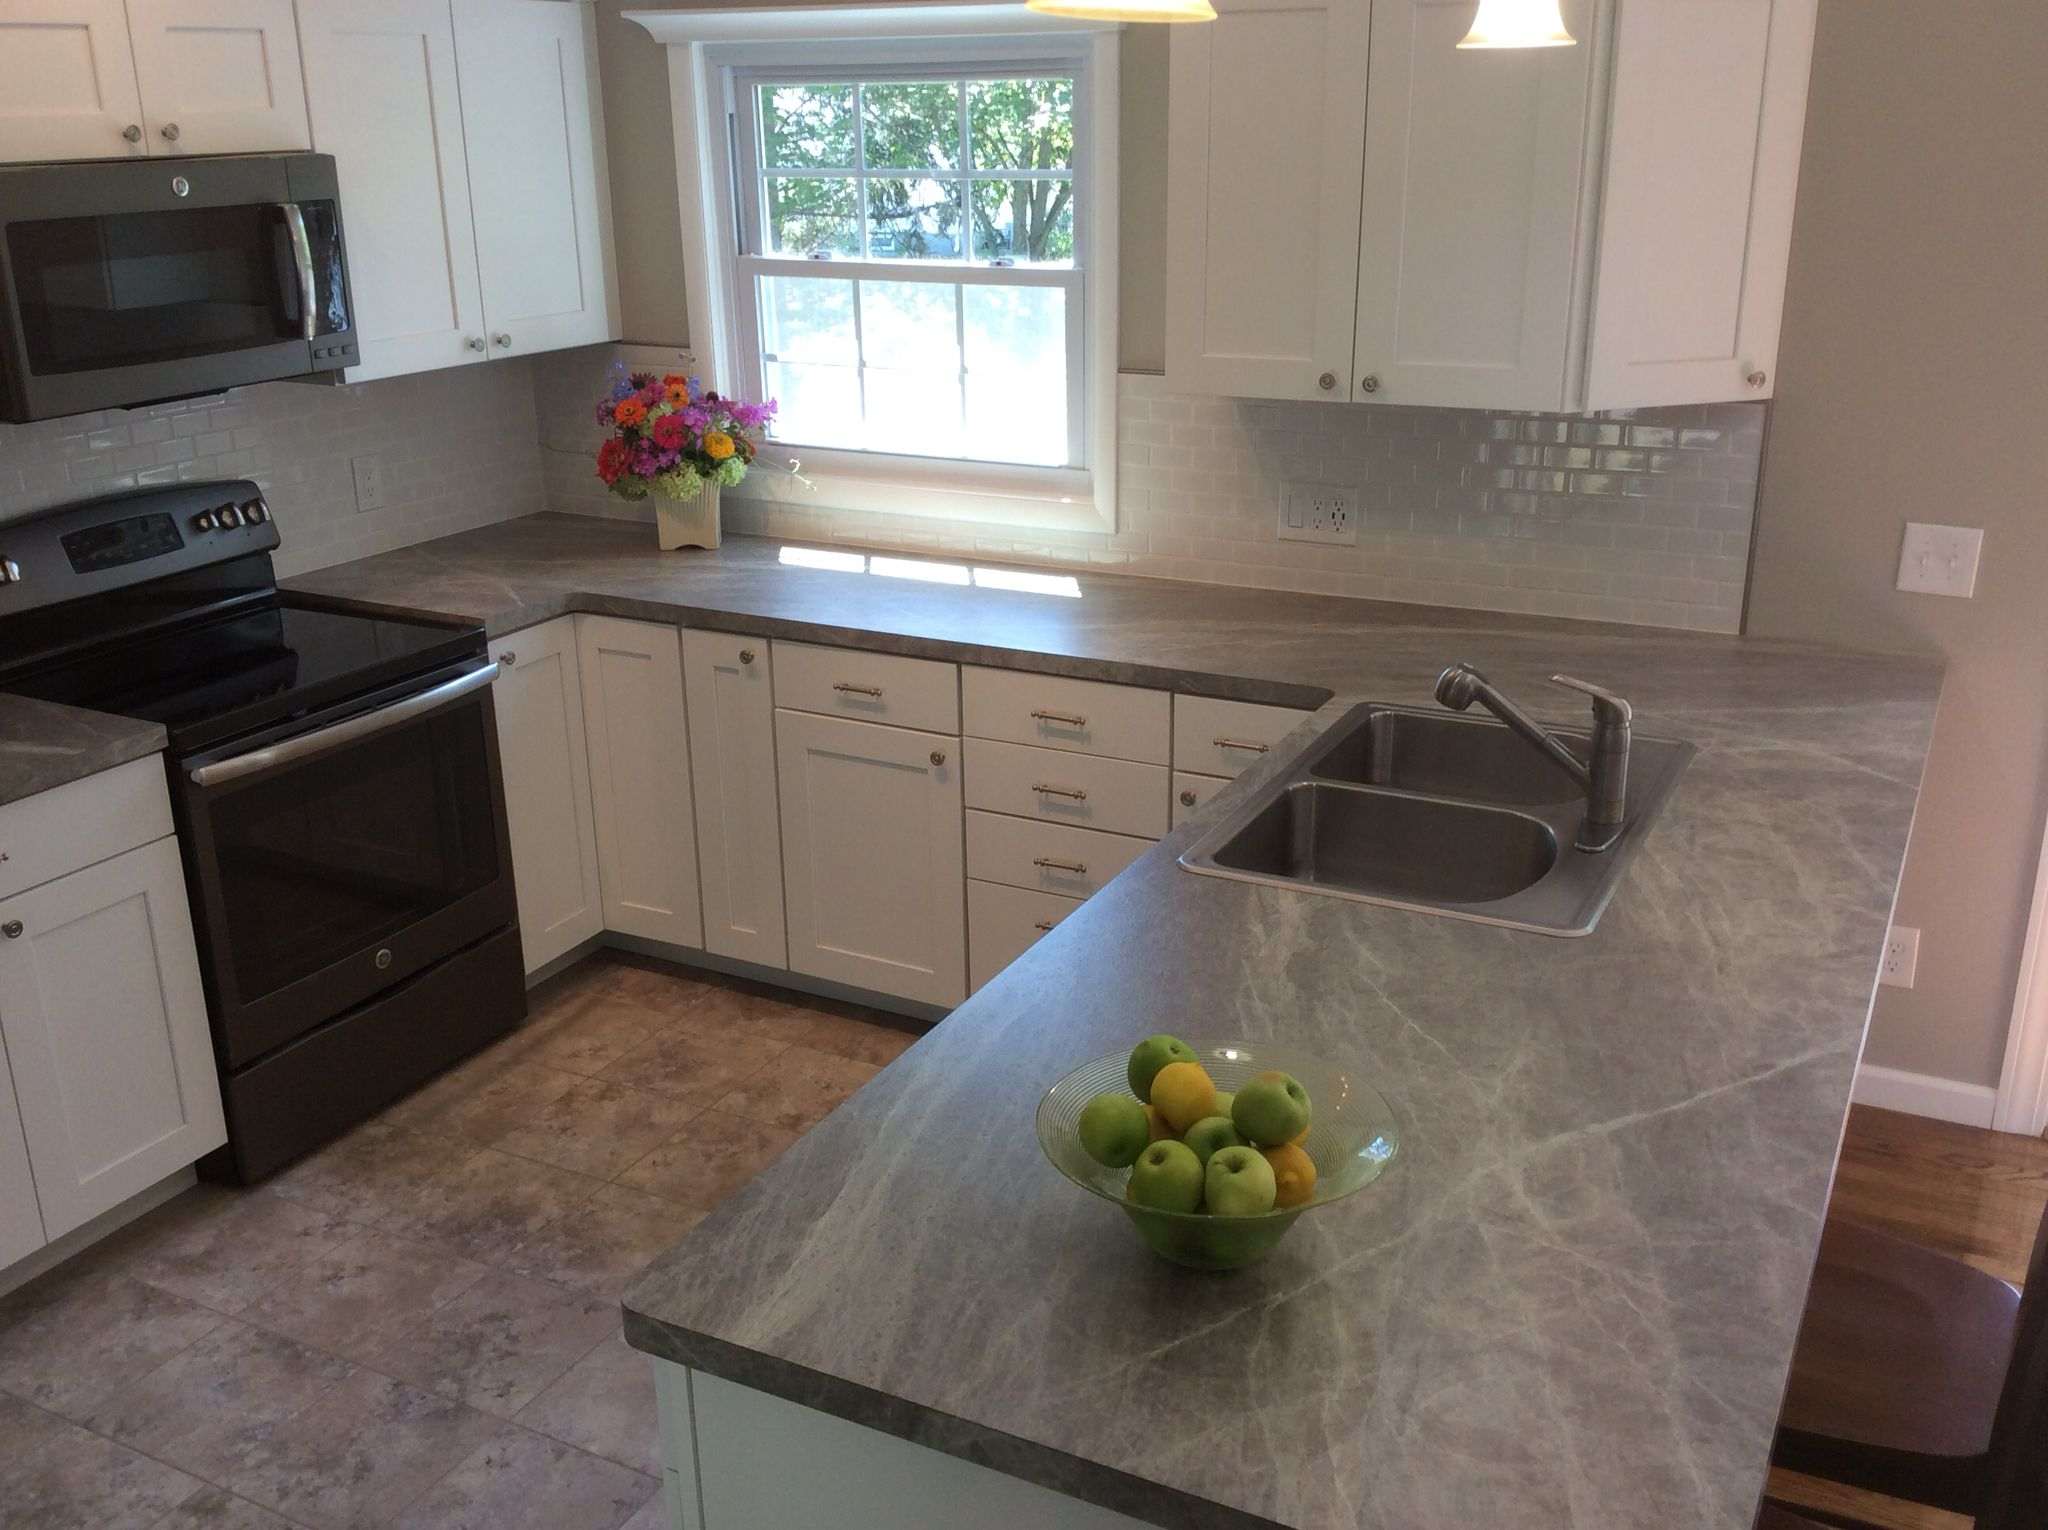 Laminate Kitchen Countertops White Cabinets With Glass Doors Sequoia Soapstone Formica Our Raised Ranch